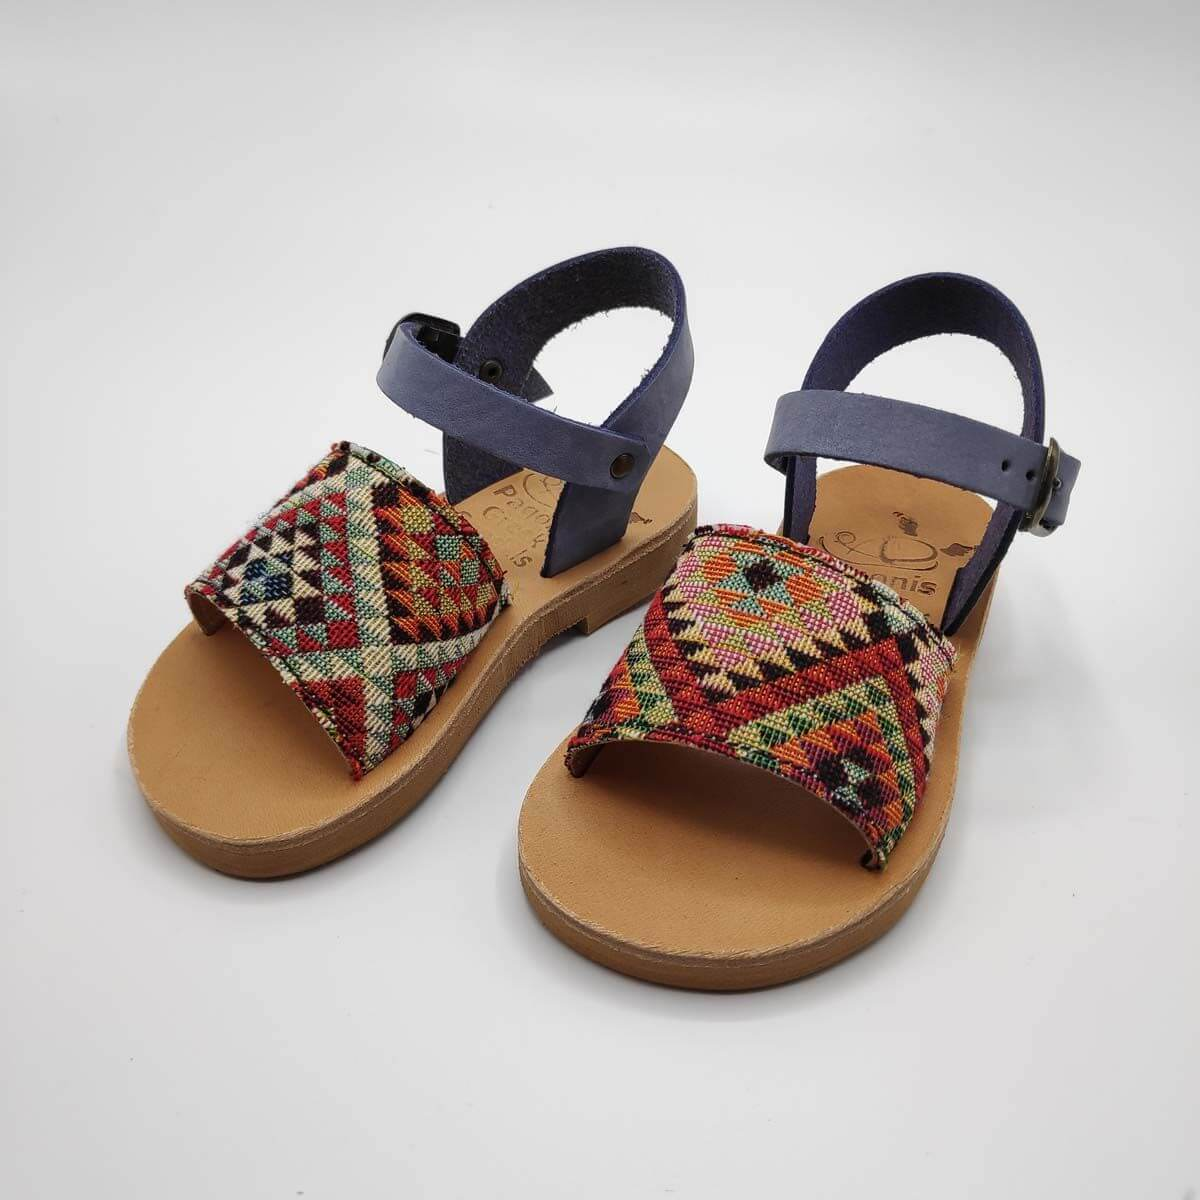 Leather Toddler Sandals For Girls | Lilac and checkered fabric